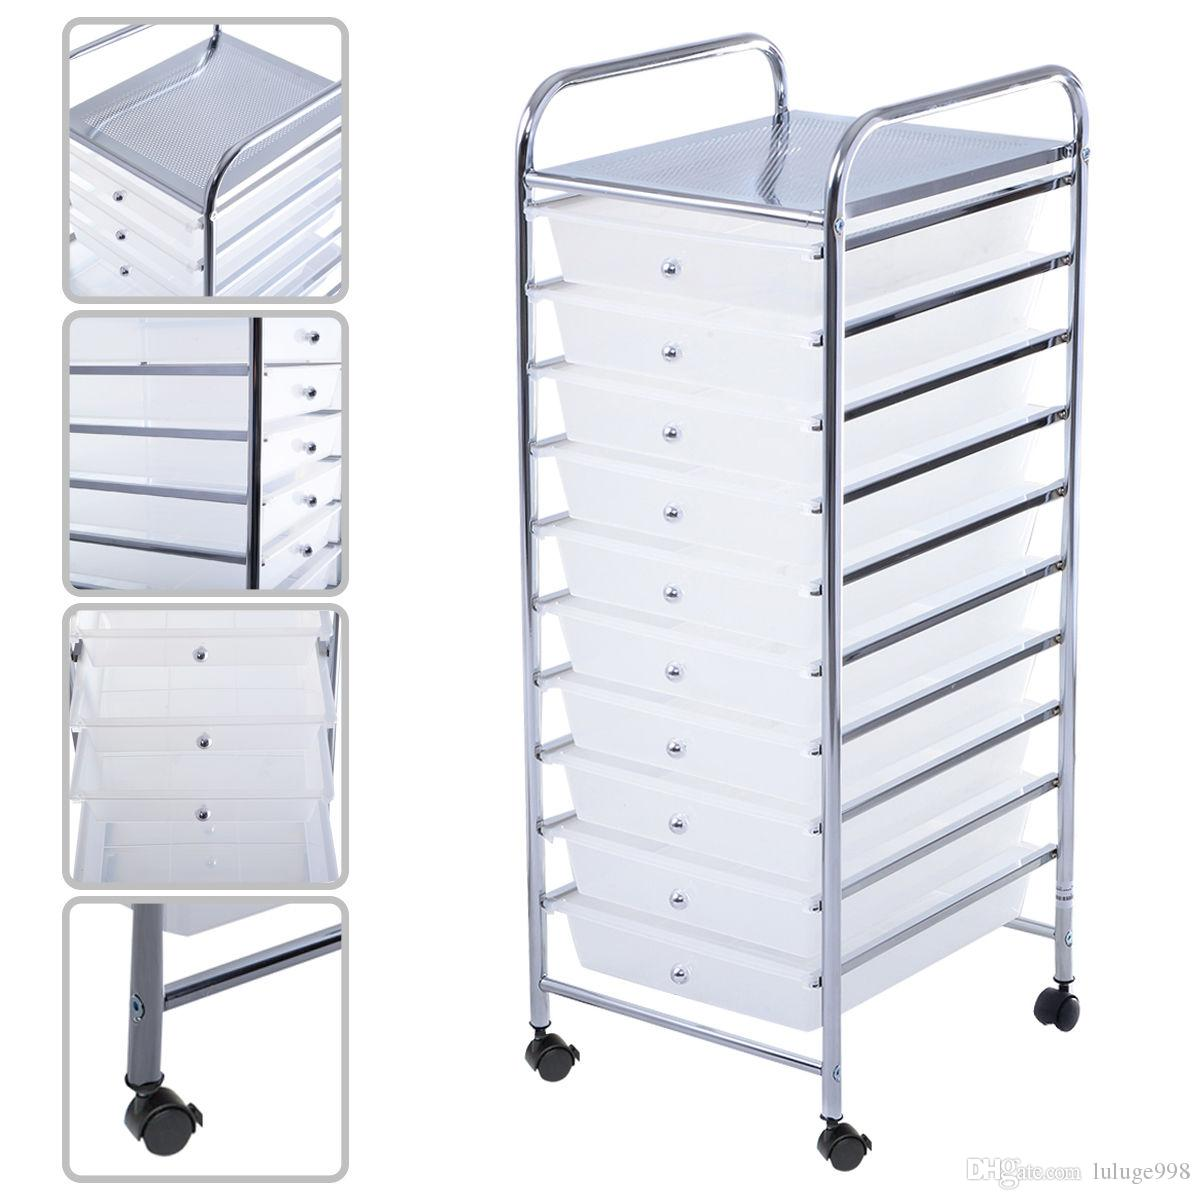 Delicieux Online Cheap 10 Drawer Rolling Storage Cart Scrapbook Paper Office School  Organizer Clear By Luluge998 | Dhgate.Com